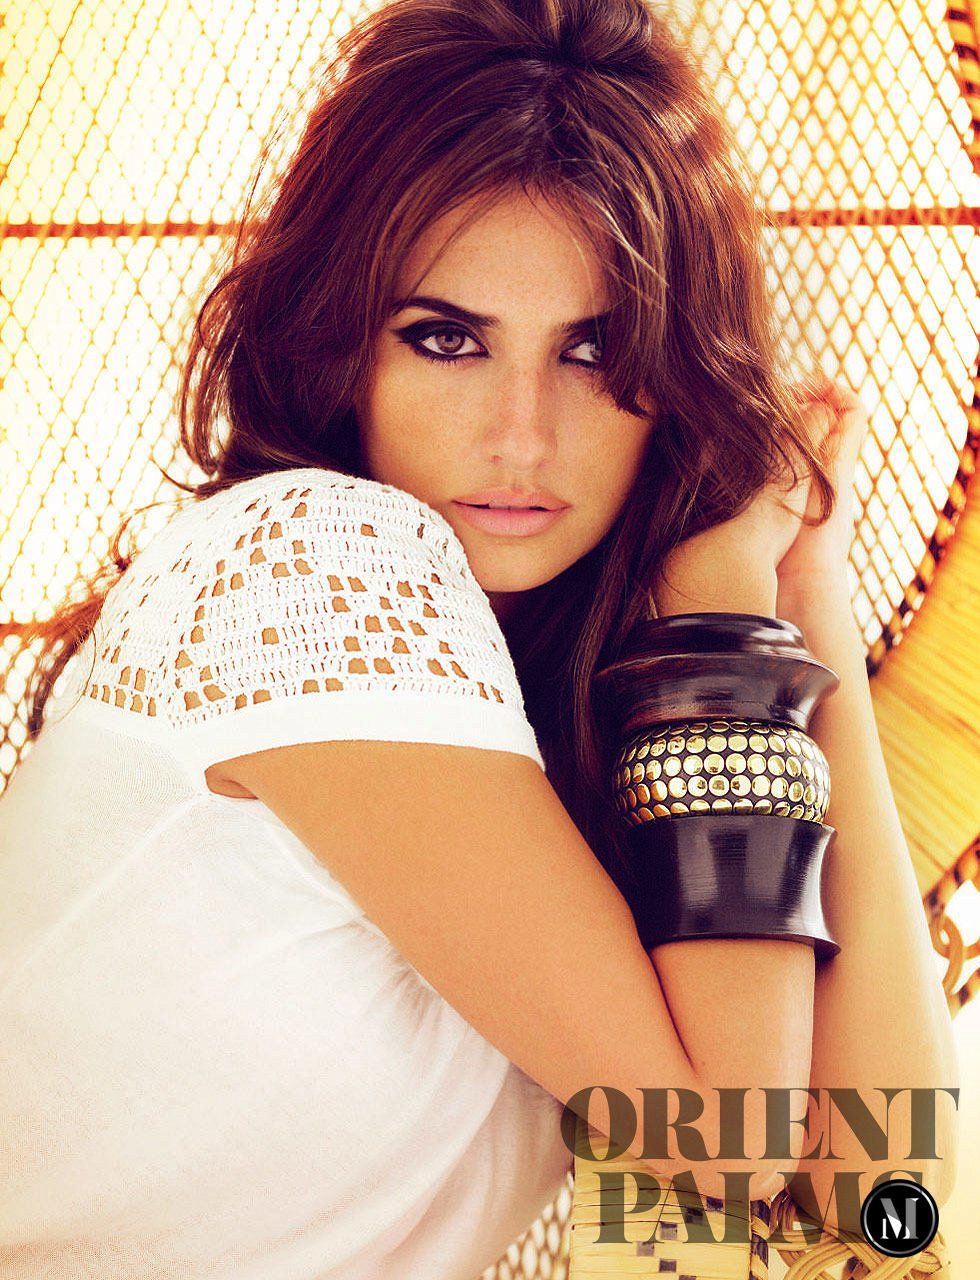 Mango Summer 2008, with Penelope and Monica Cruz Ready to Wear